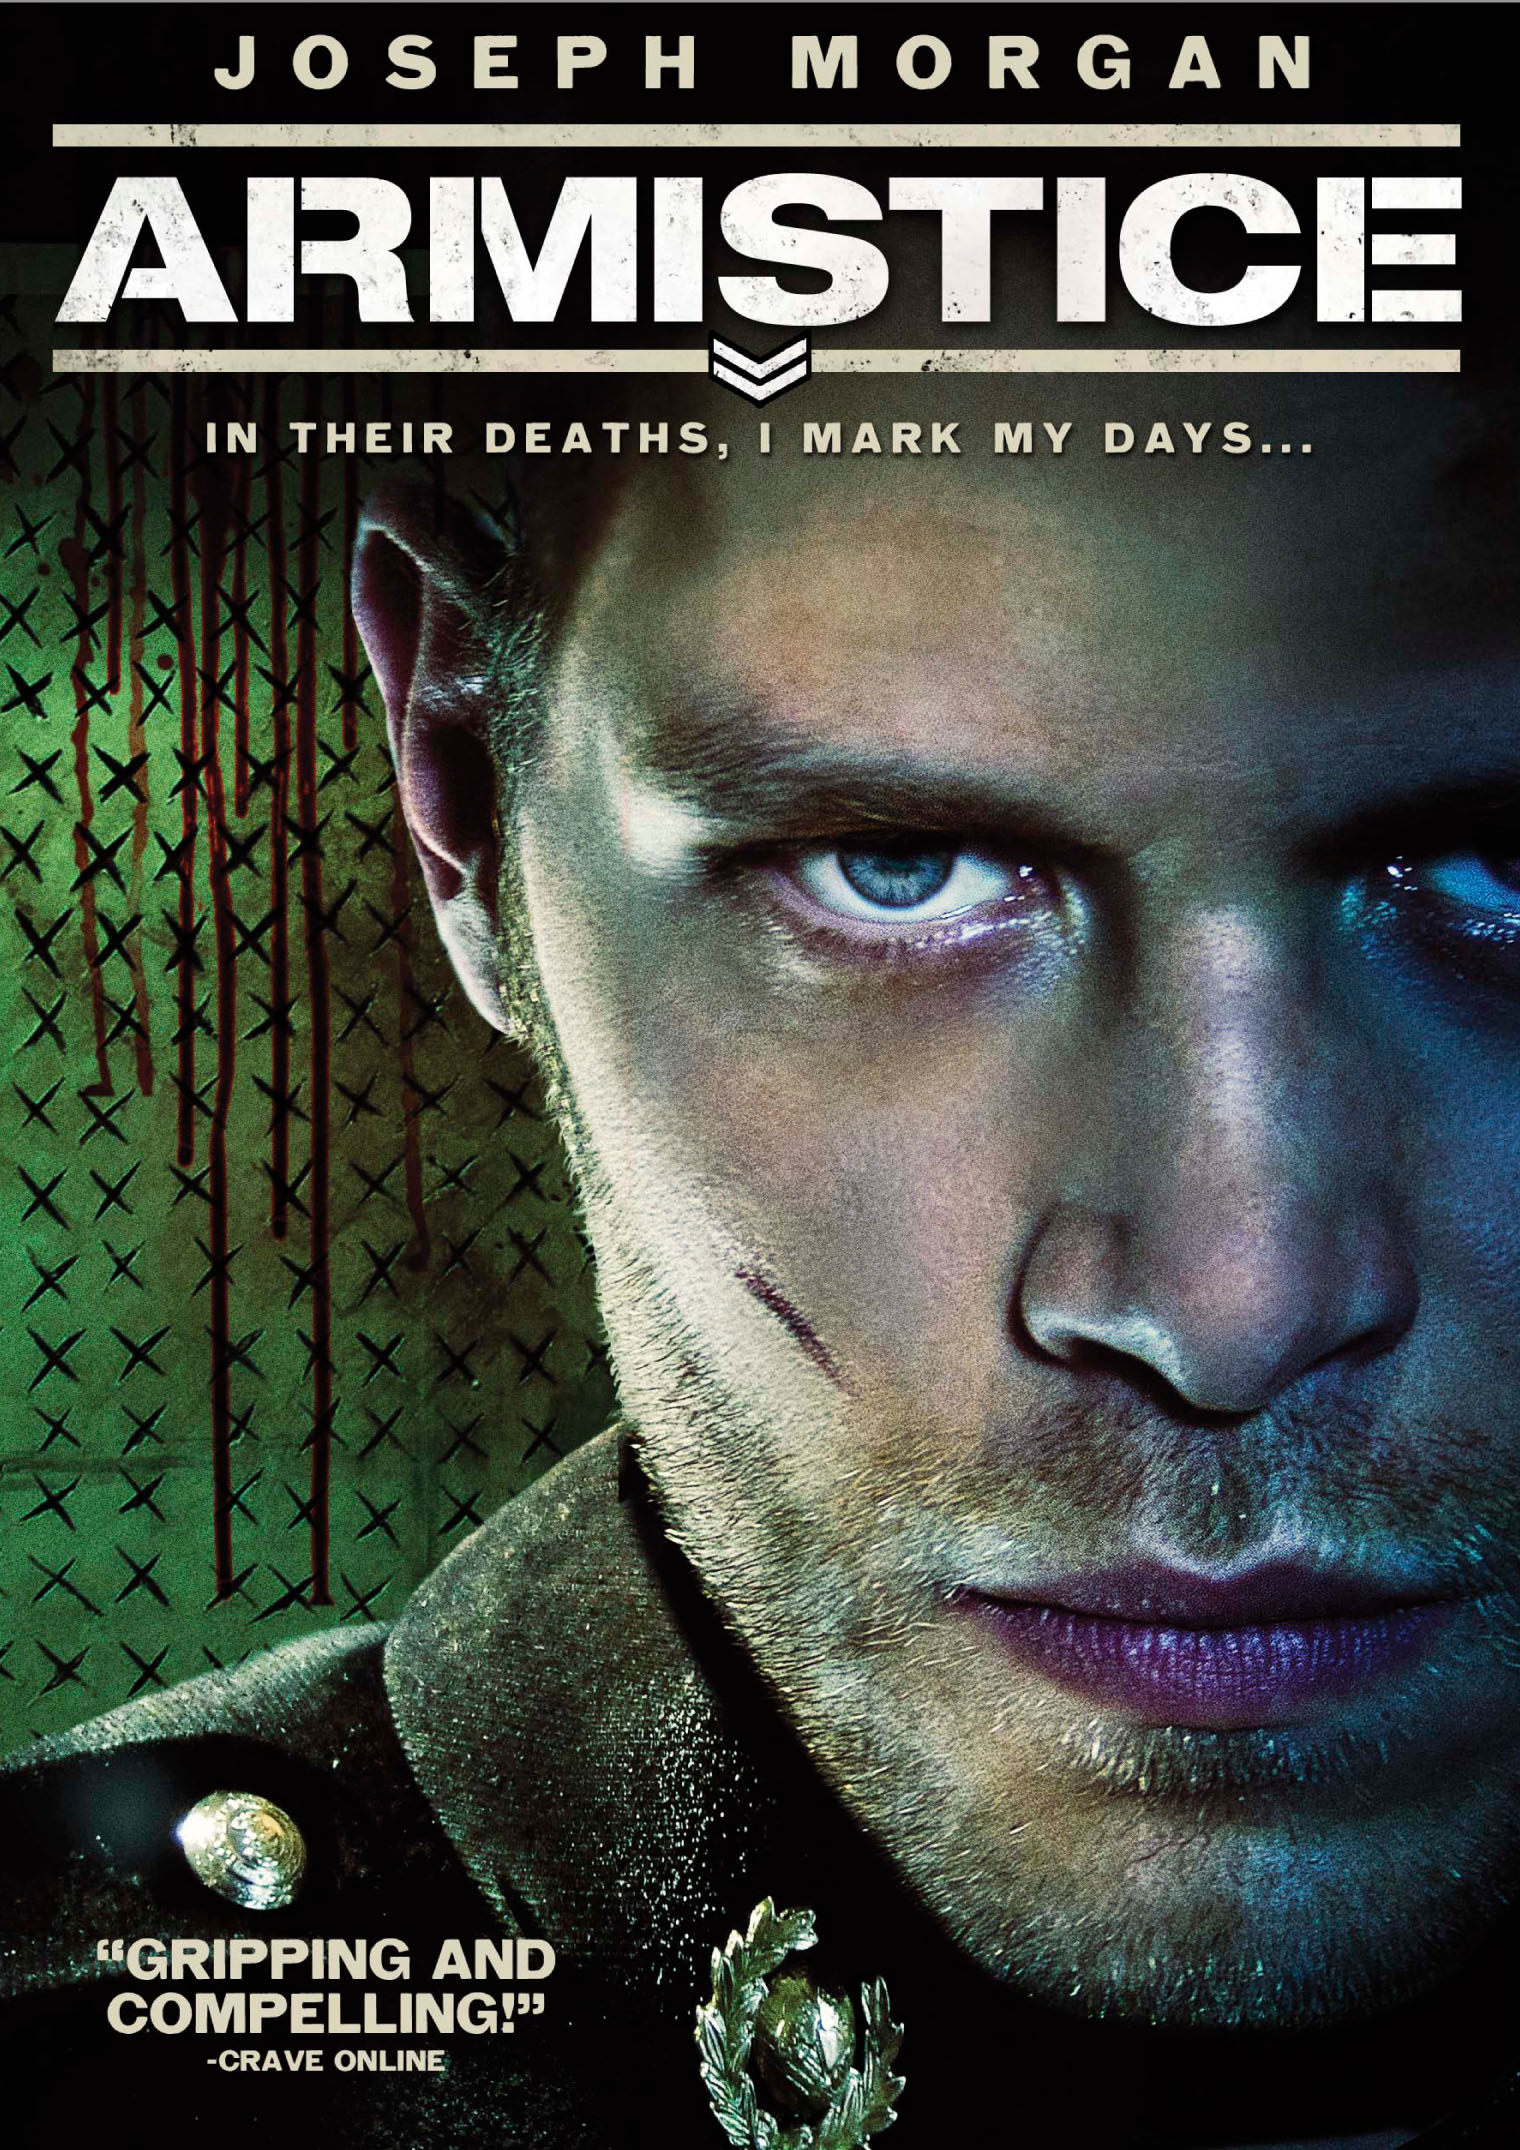 Armistice KA 26 Joseph Morgan Battles His Demons with Armistice DVD Release